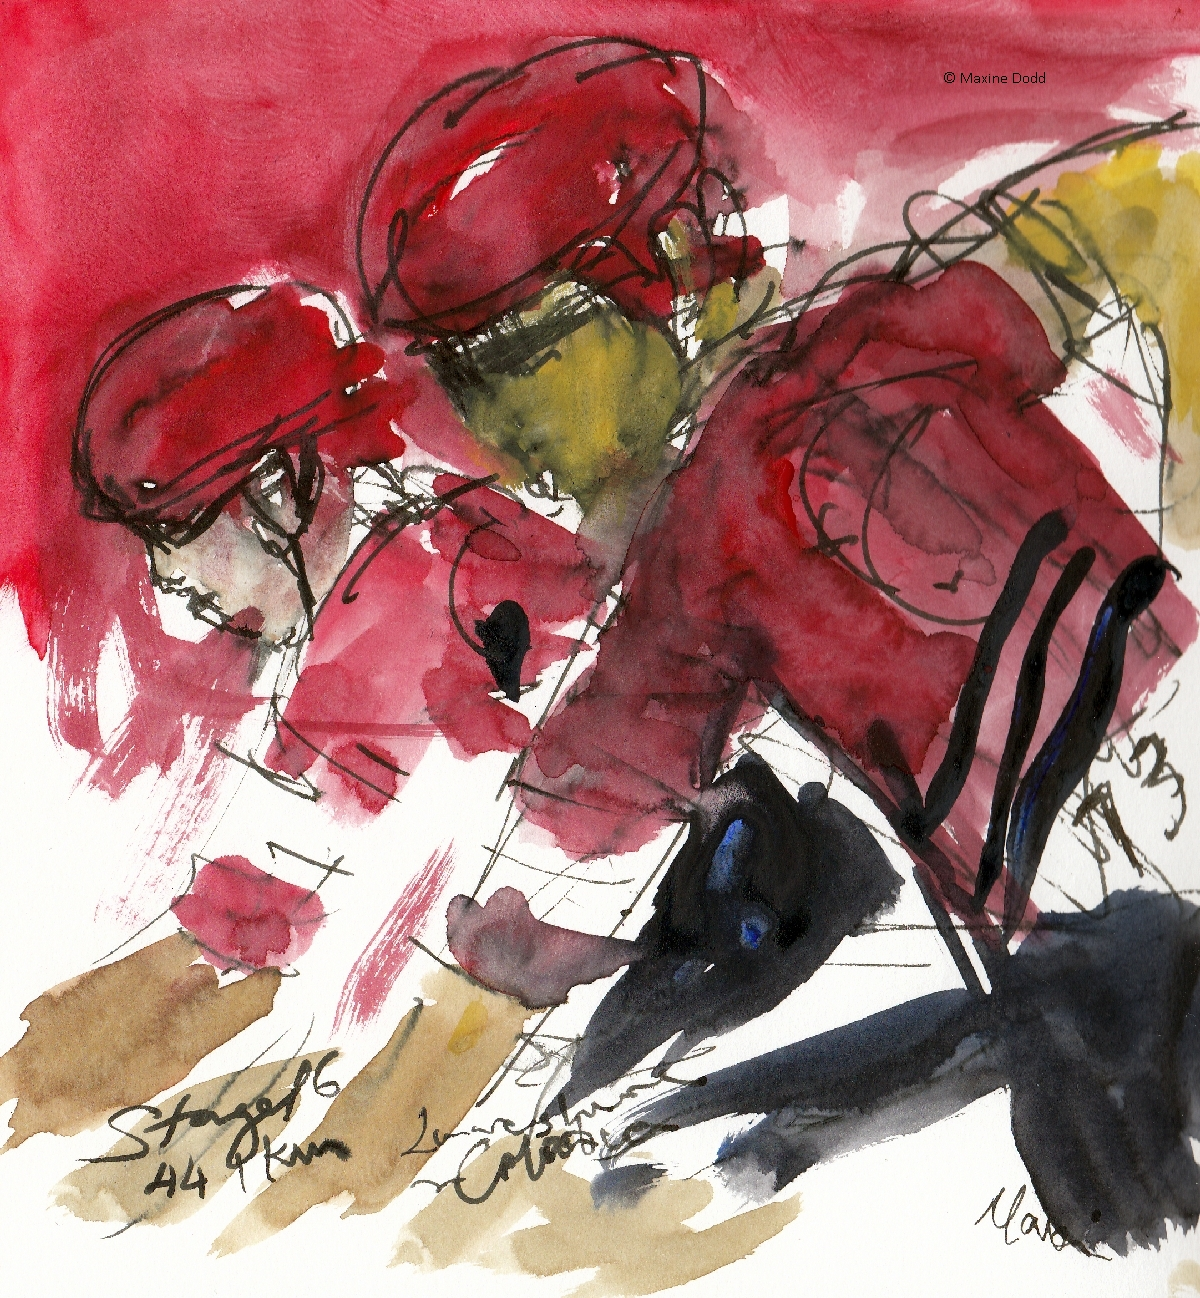 Colombia and Lancashire, watercolour, pen and ink by Maxine Dodd